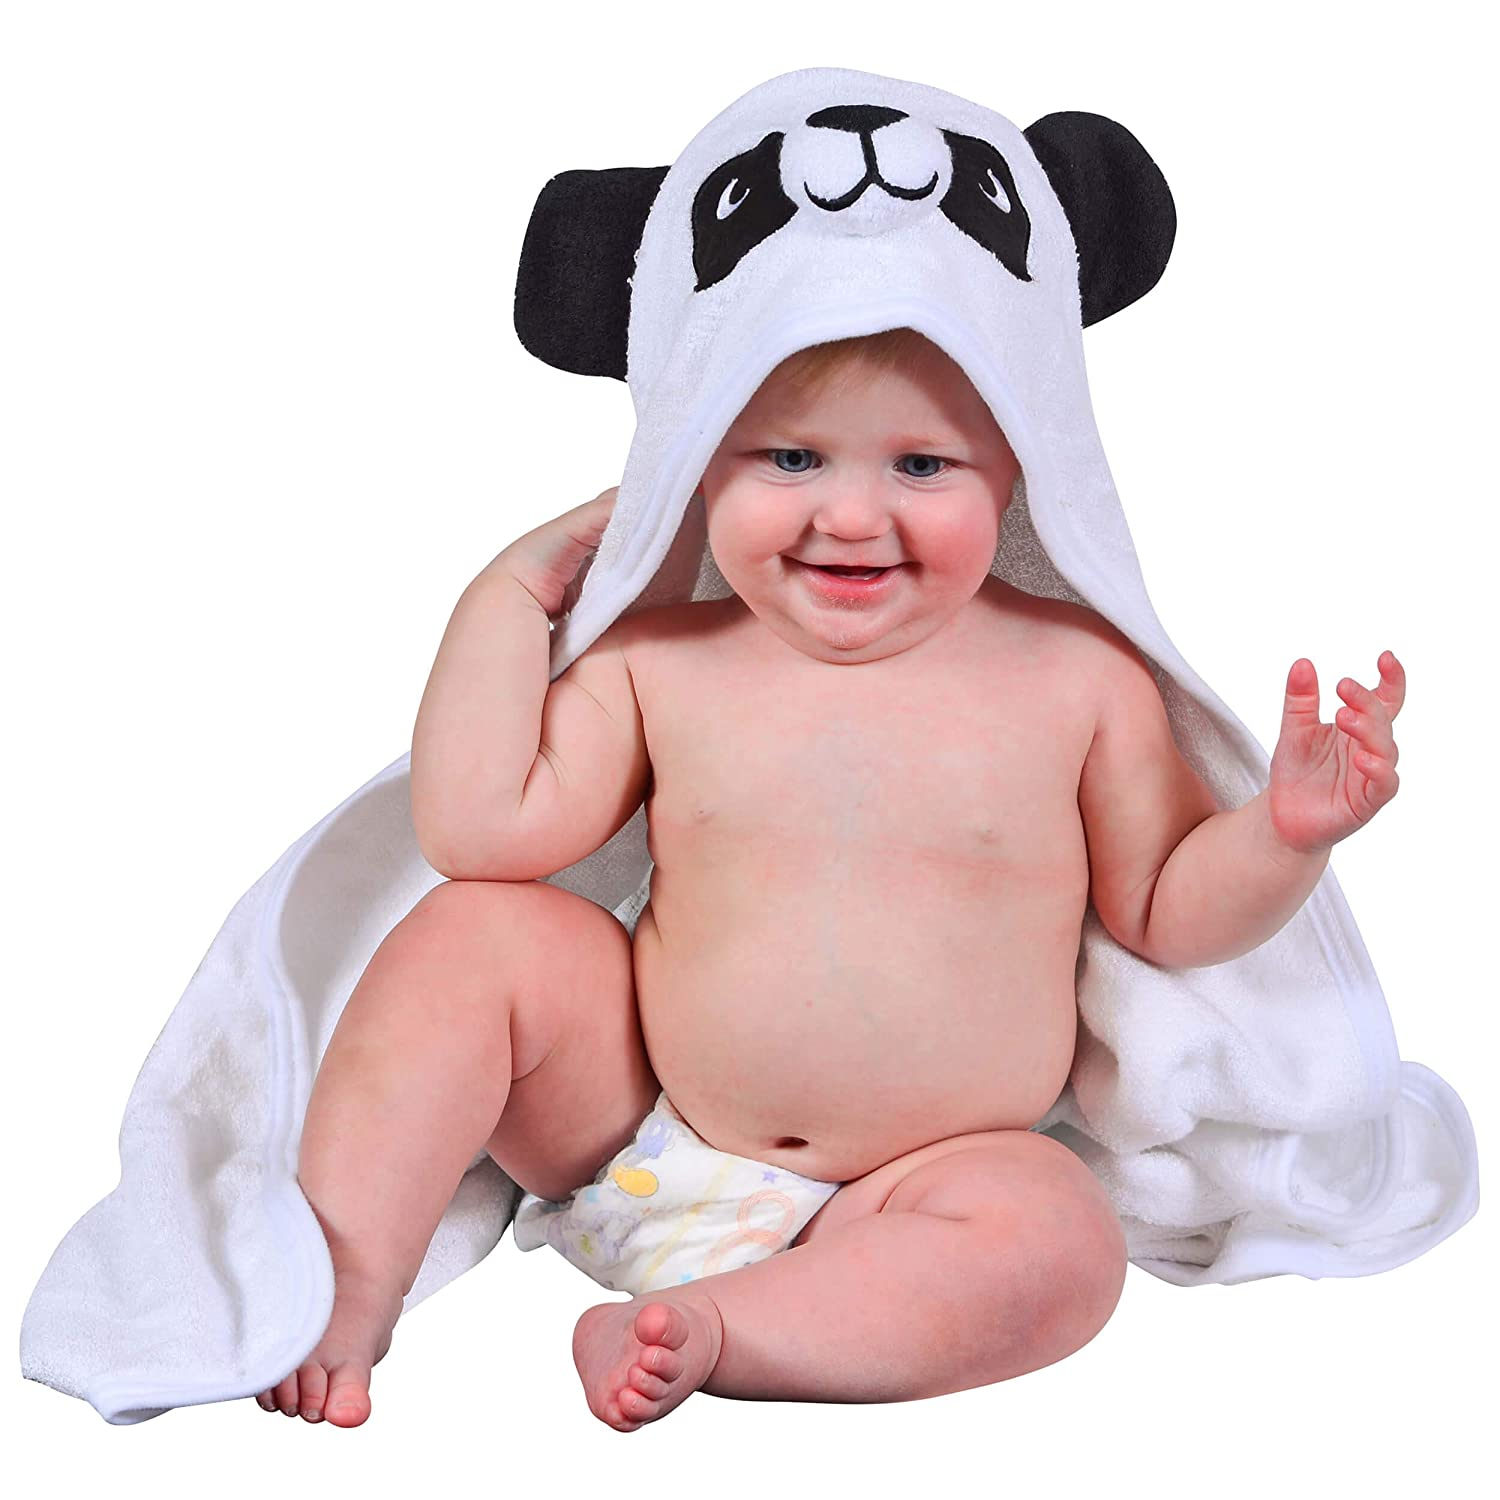 Hooded Baby Towel and Washcloth - Soft and Snuggly to Keep Your Child Warm - Made from Fast Drying Bamboo - Adorable Extra Large Towels with Hood for Newborns, Infants, Kids - Includes Laundry Bag Calpico Creations